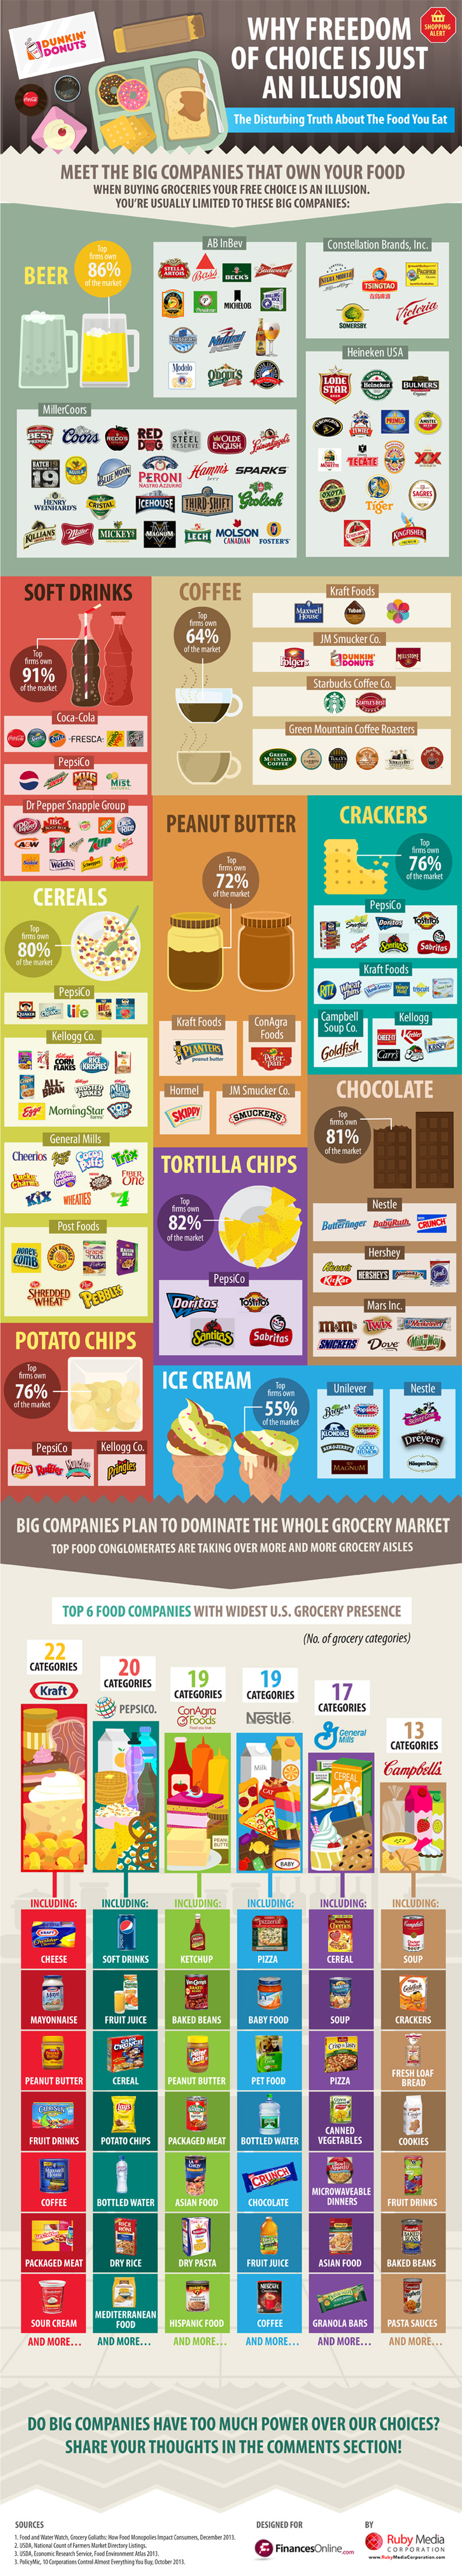 illusion of choice See How The Big Brand Name Companies Are Making The Grocery Store Their Monopoly Game (Infographic)